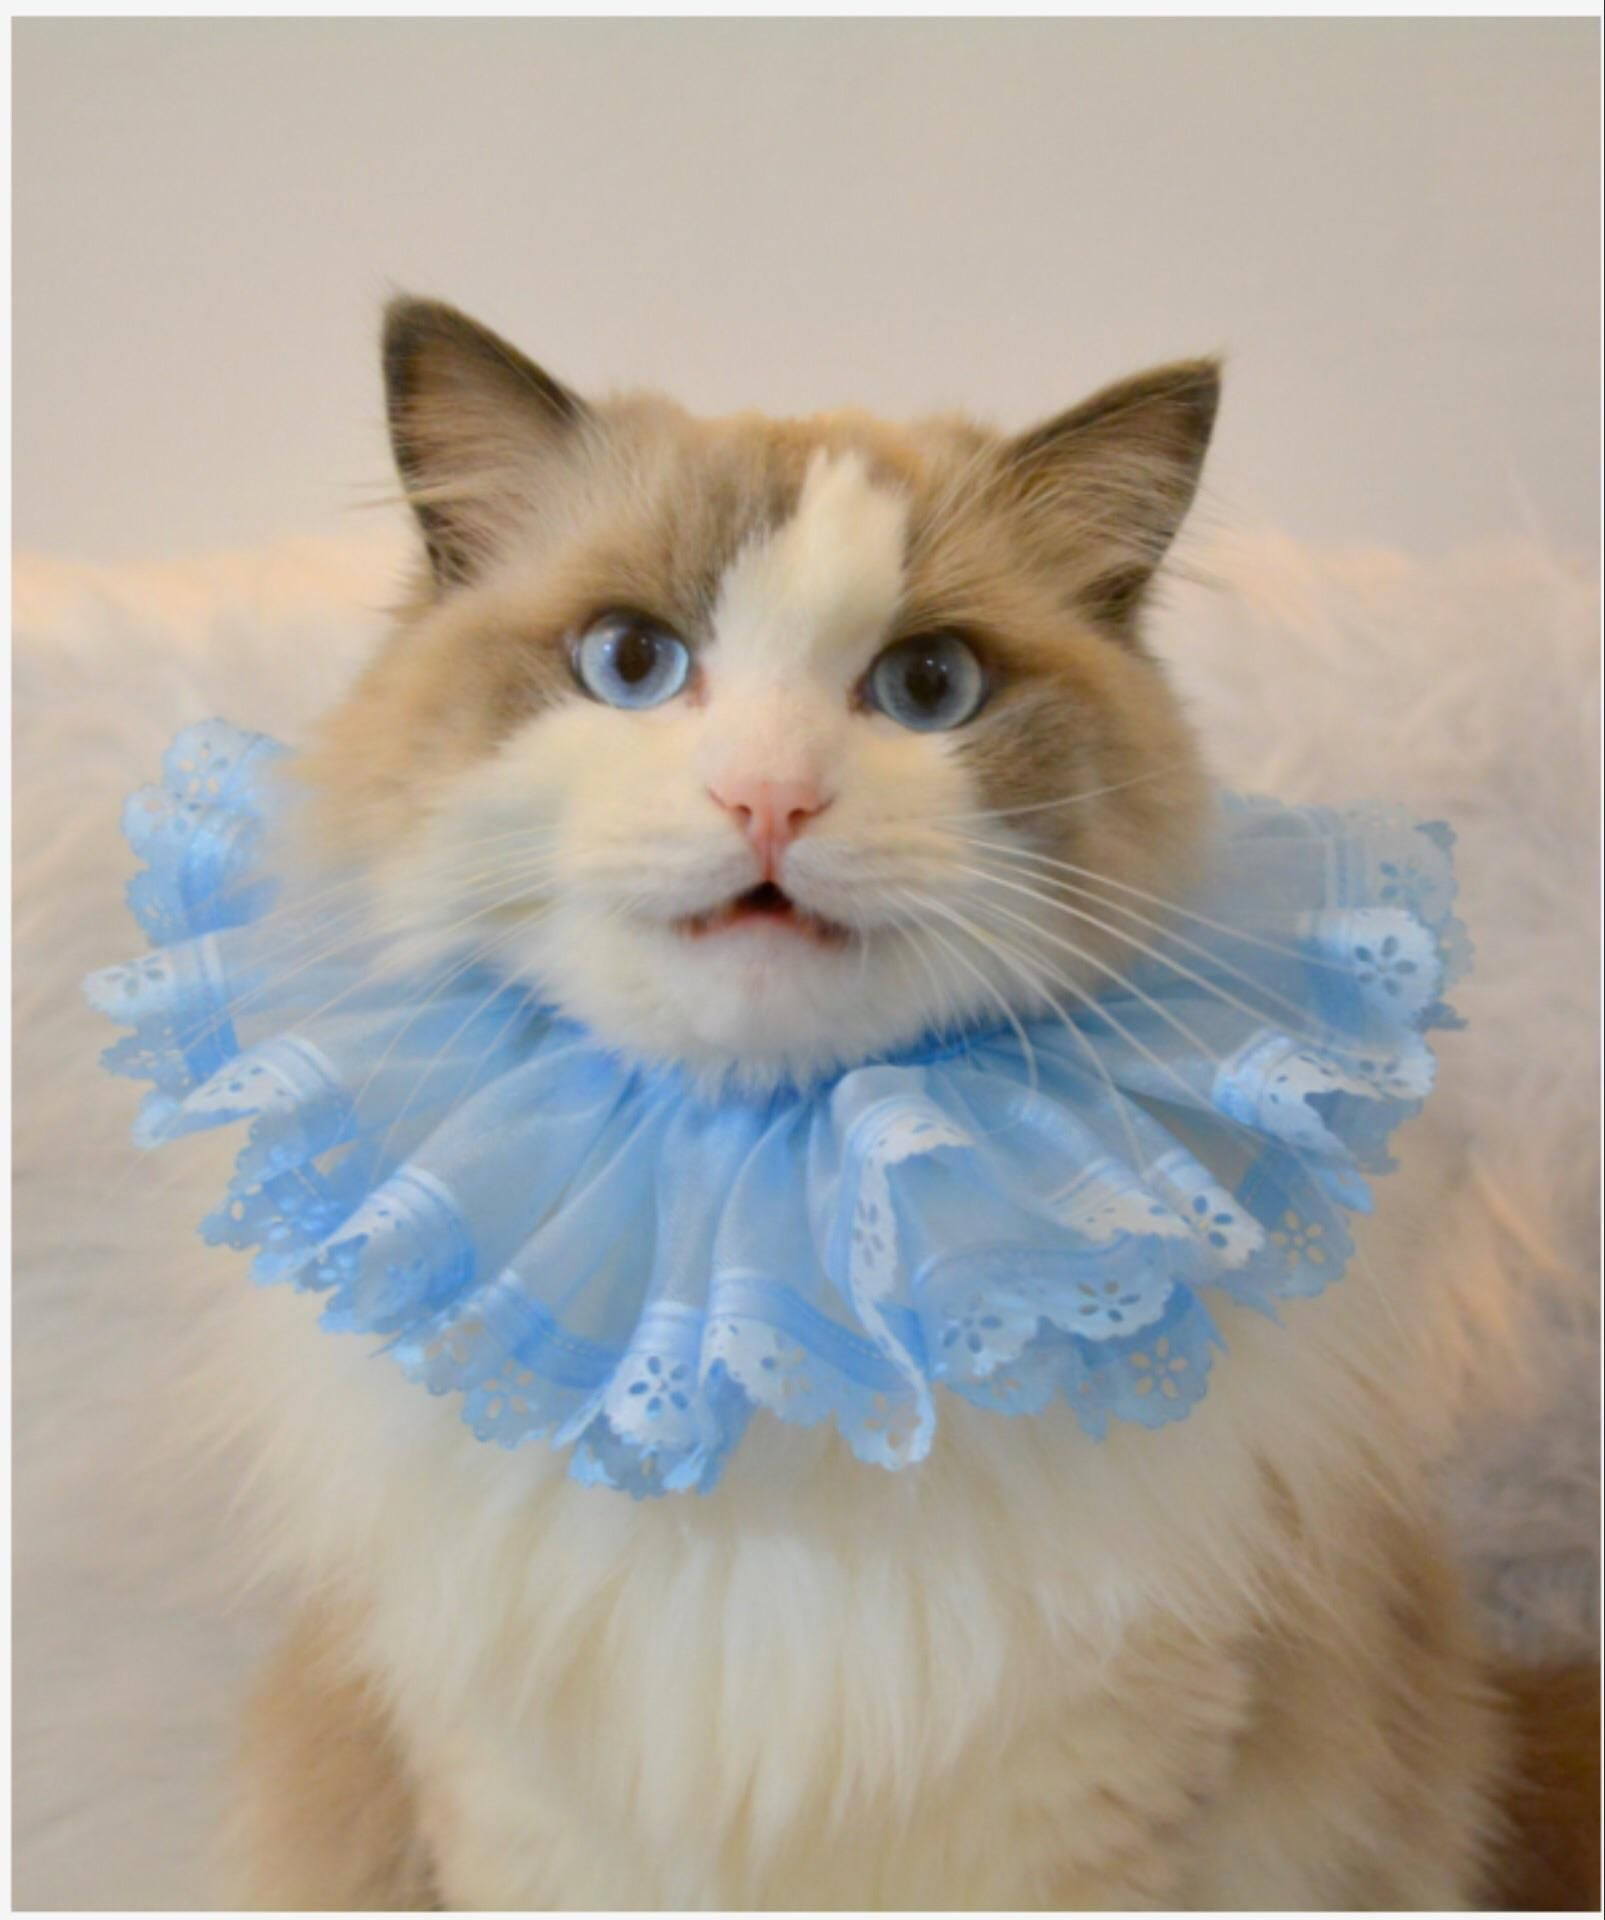 This is a Neck Tutu for Small Pets :3 http://ift.tt/2rSRARZ